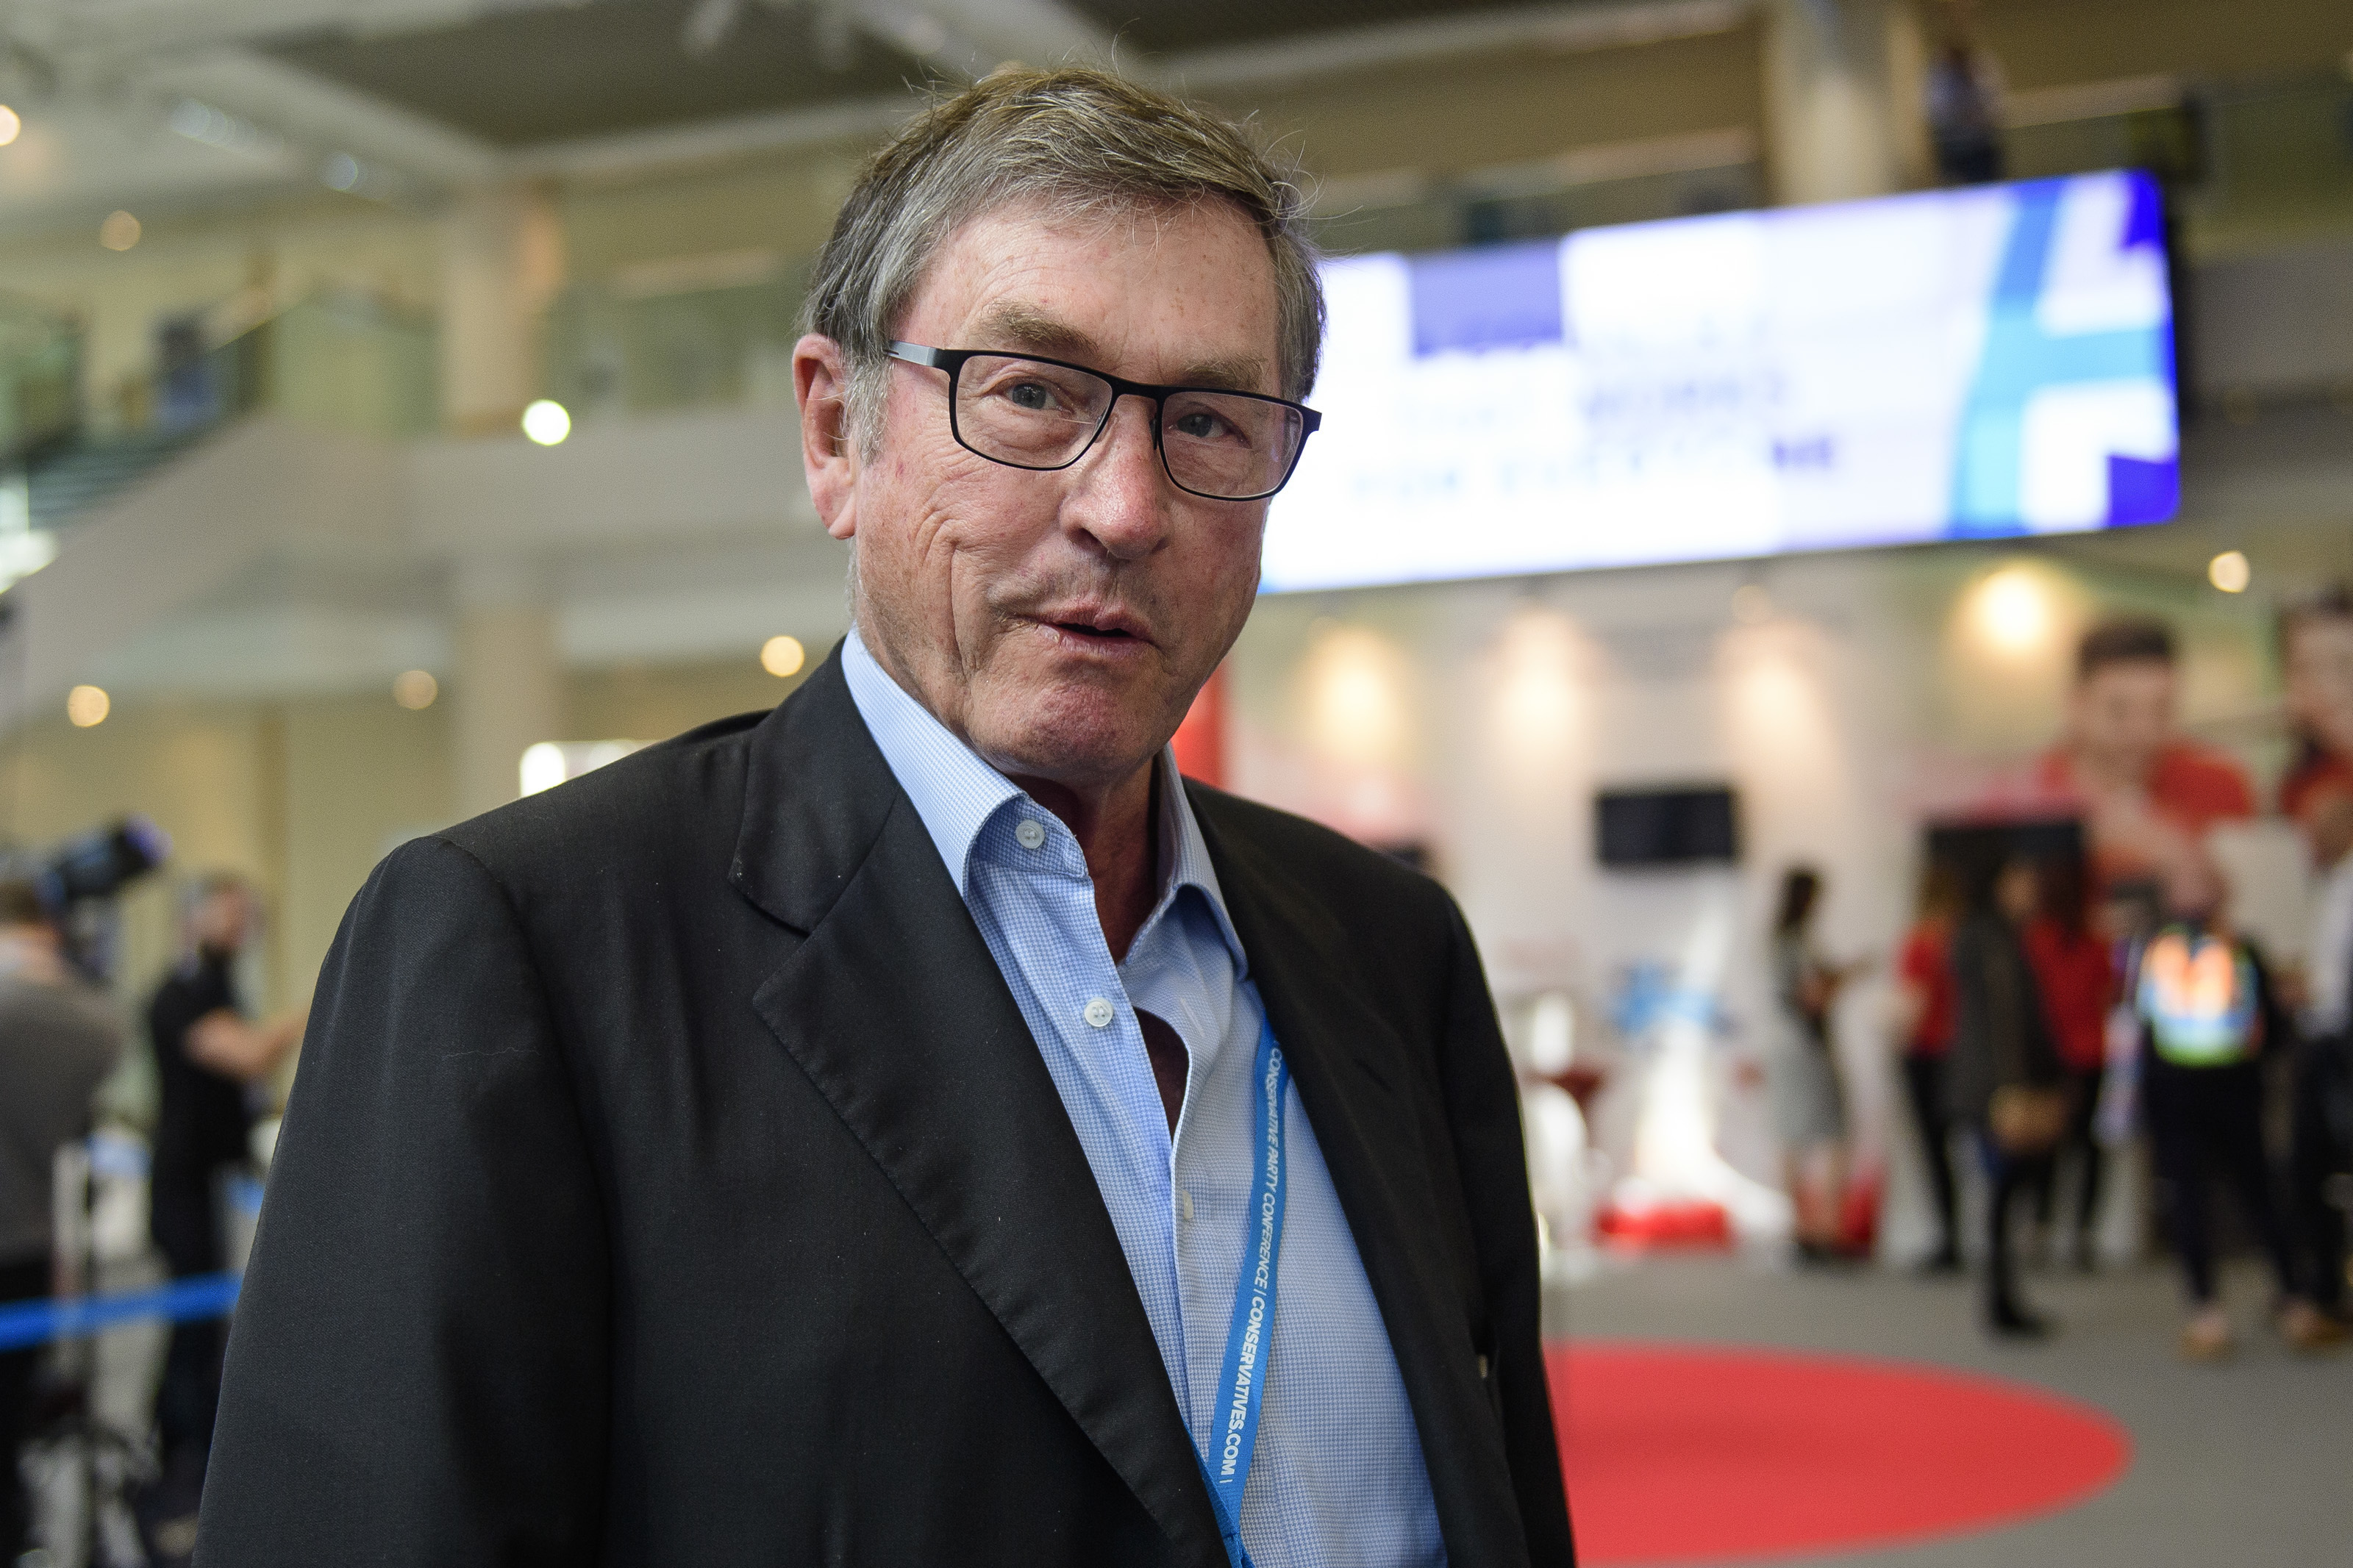 Lord Michael Ashcroft at the ICC in Birmingham, on Oct. 2, 2016.